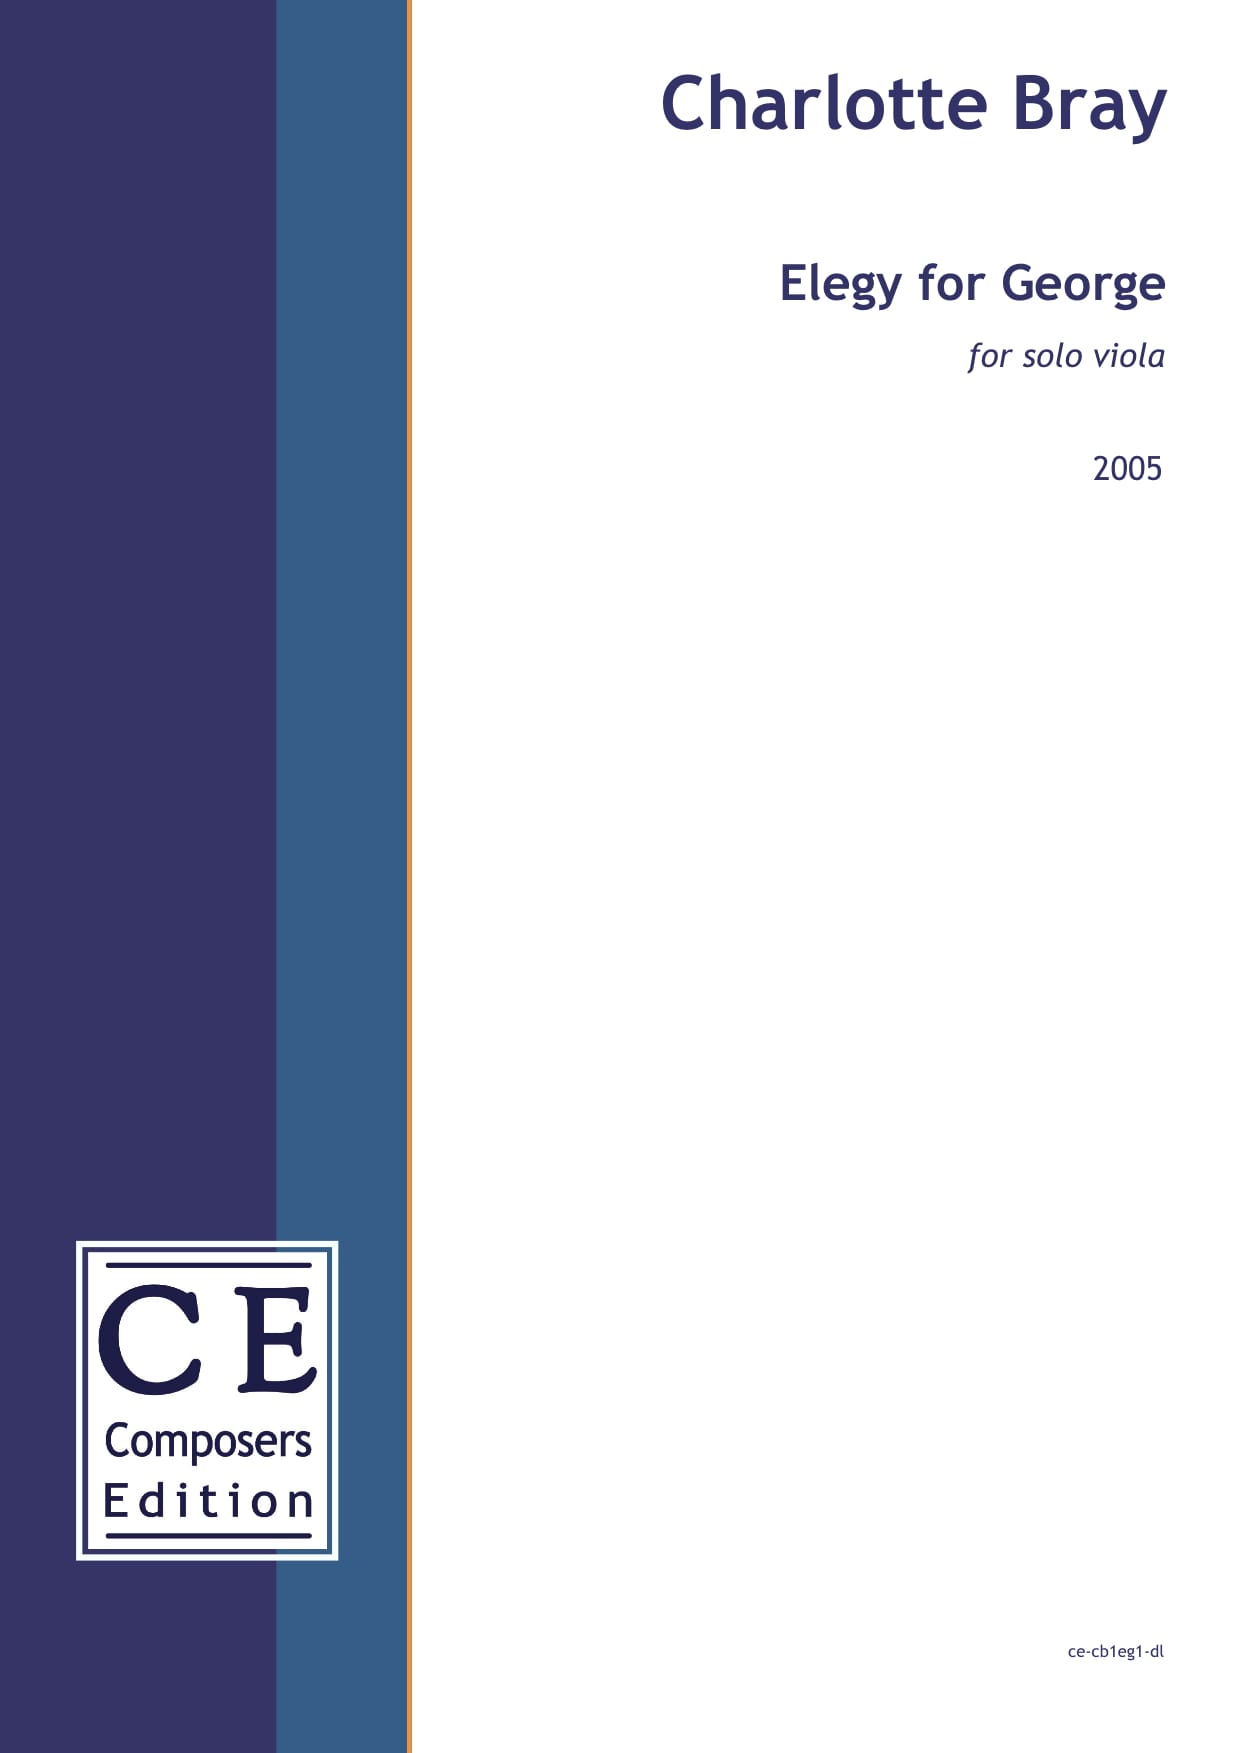 Charlotte Bray: Elegy for George for solo viola